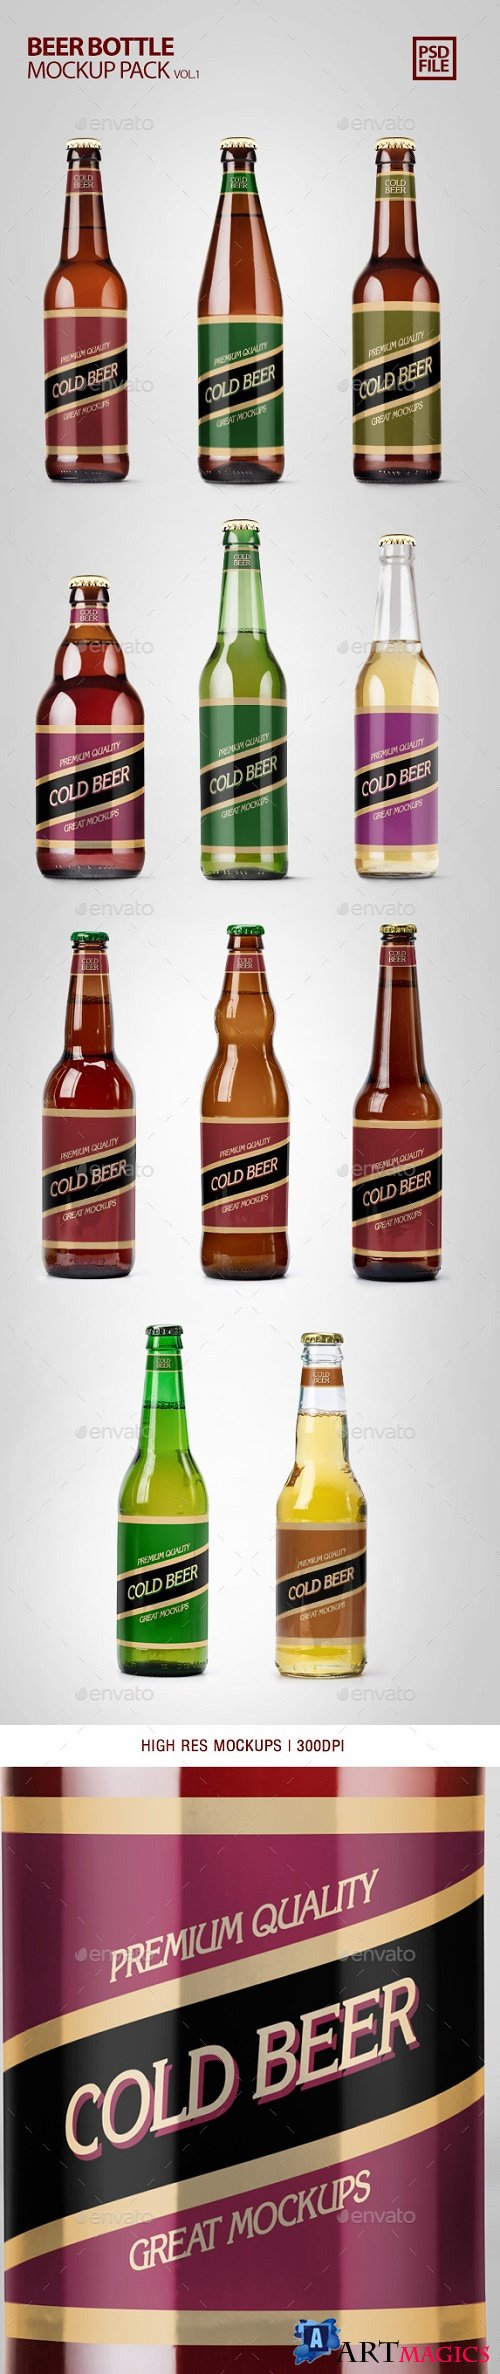 Beer Bottle Mockup Pack Vol.1 | Food and Drink